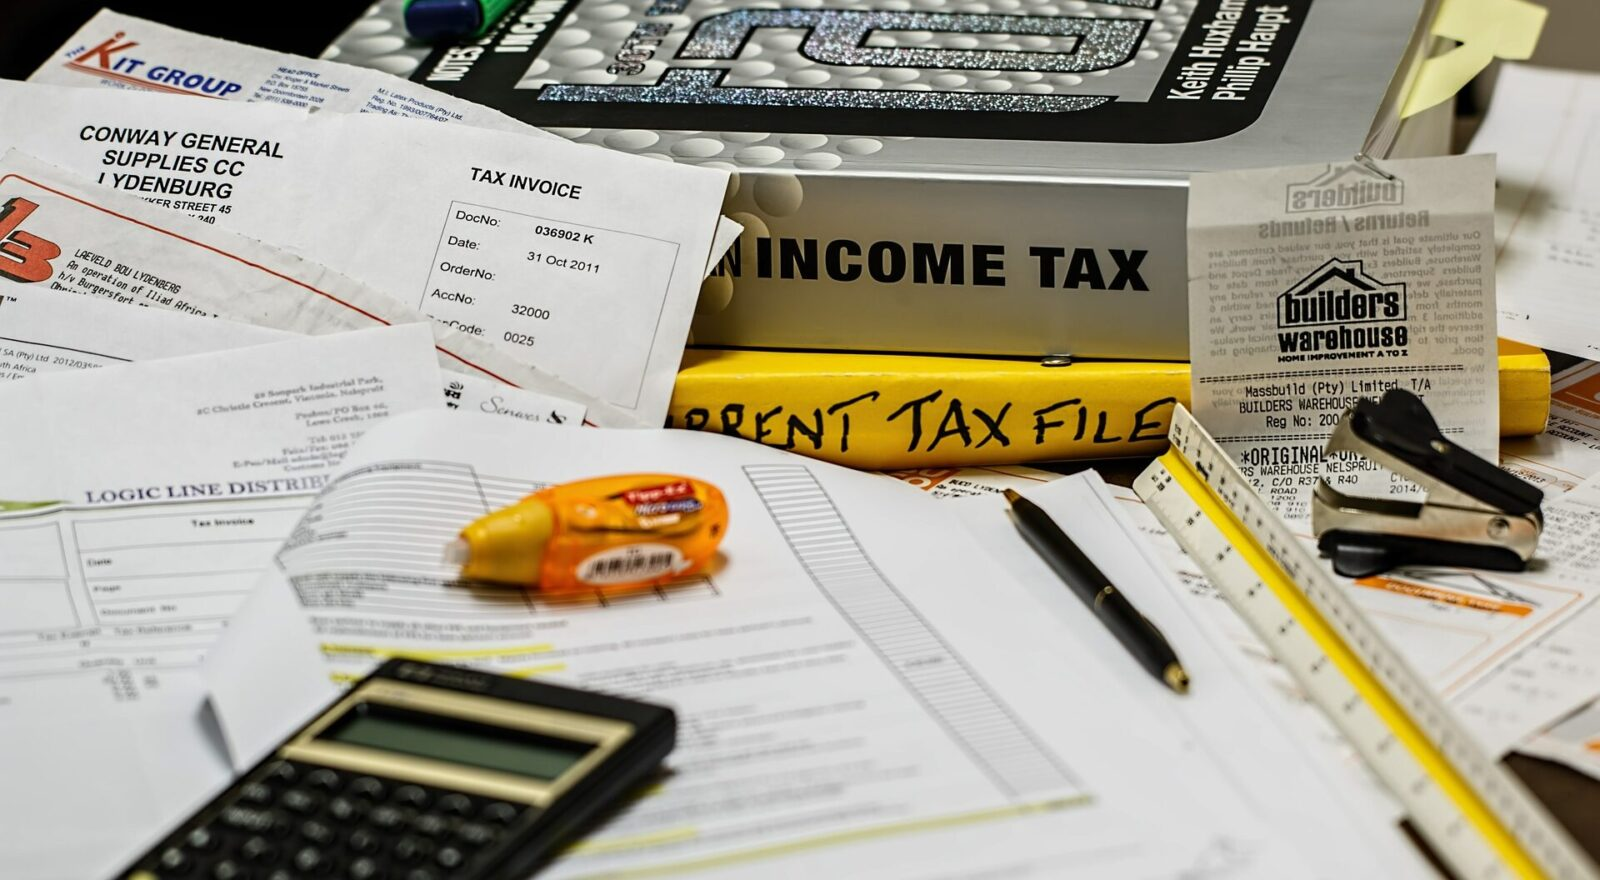 3 Reasons Why Having An Accountant Is An Absolute Must